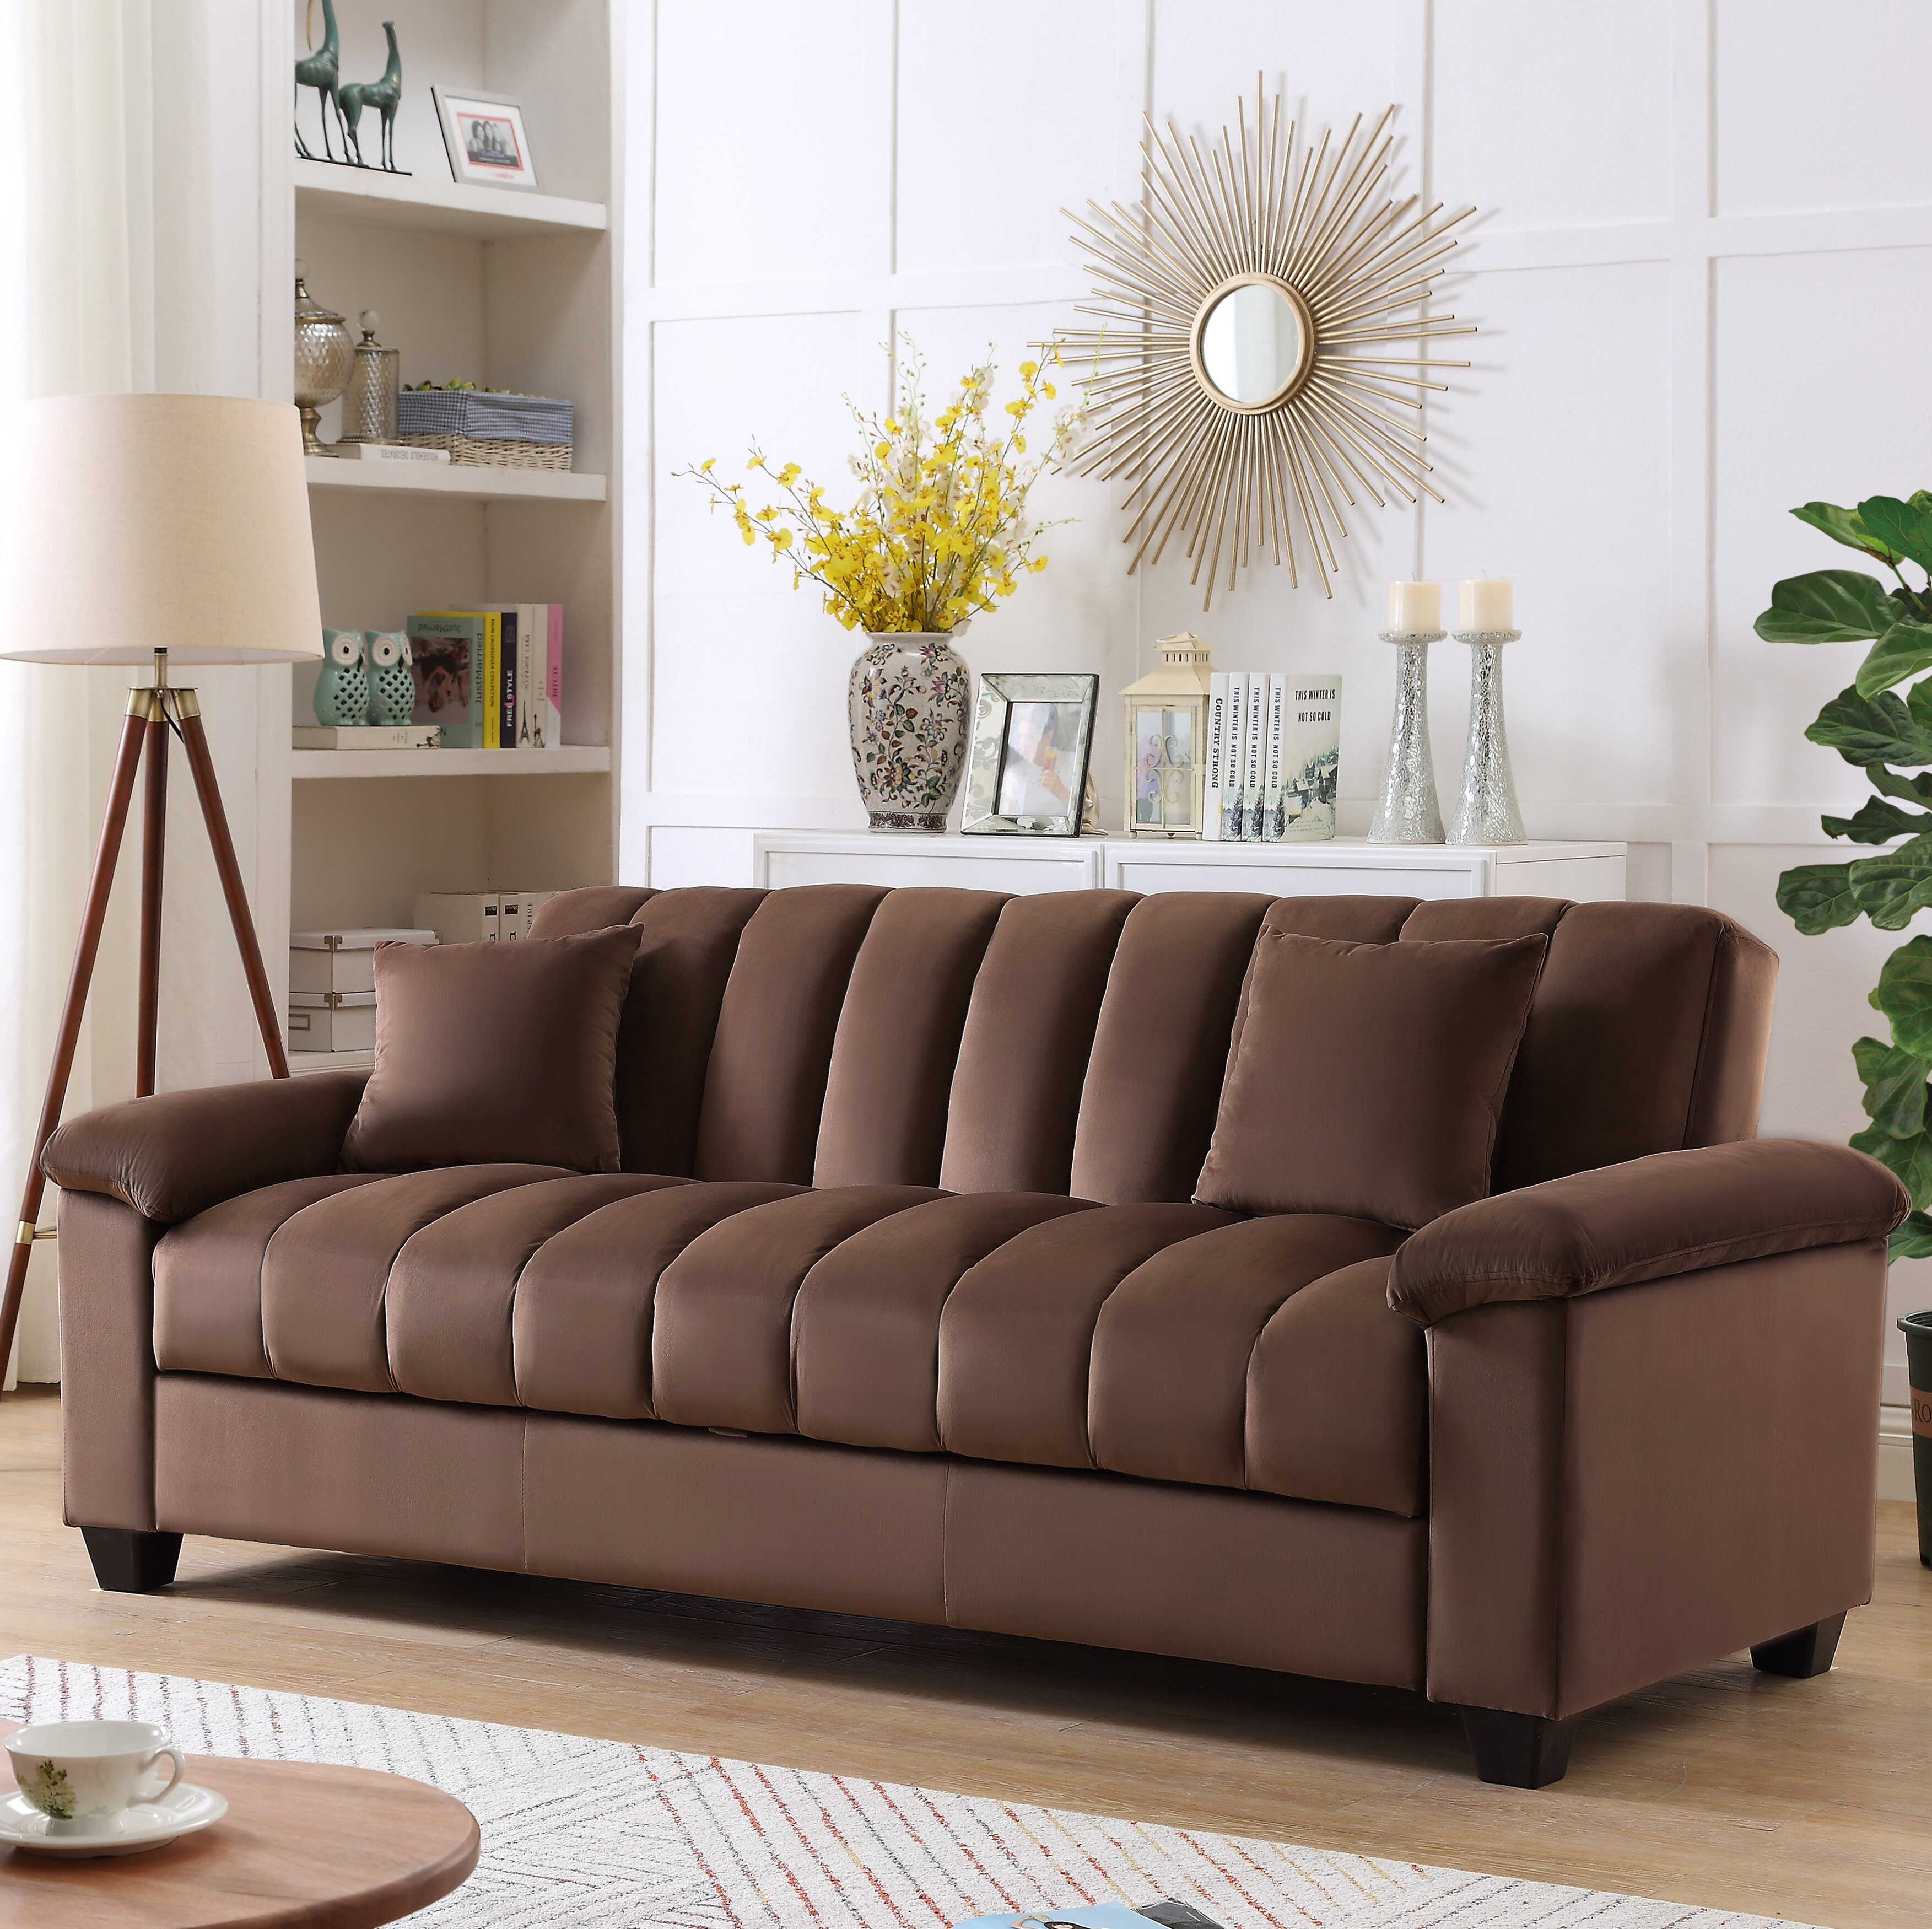 Terrie 83 Pillow Top Arms Sleeper Sofa